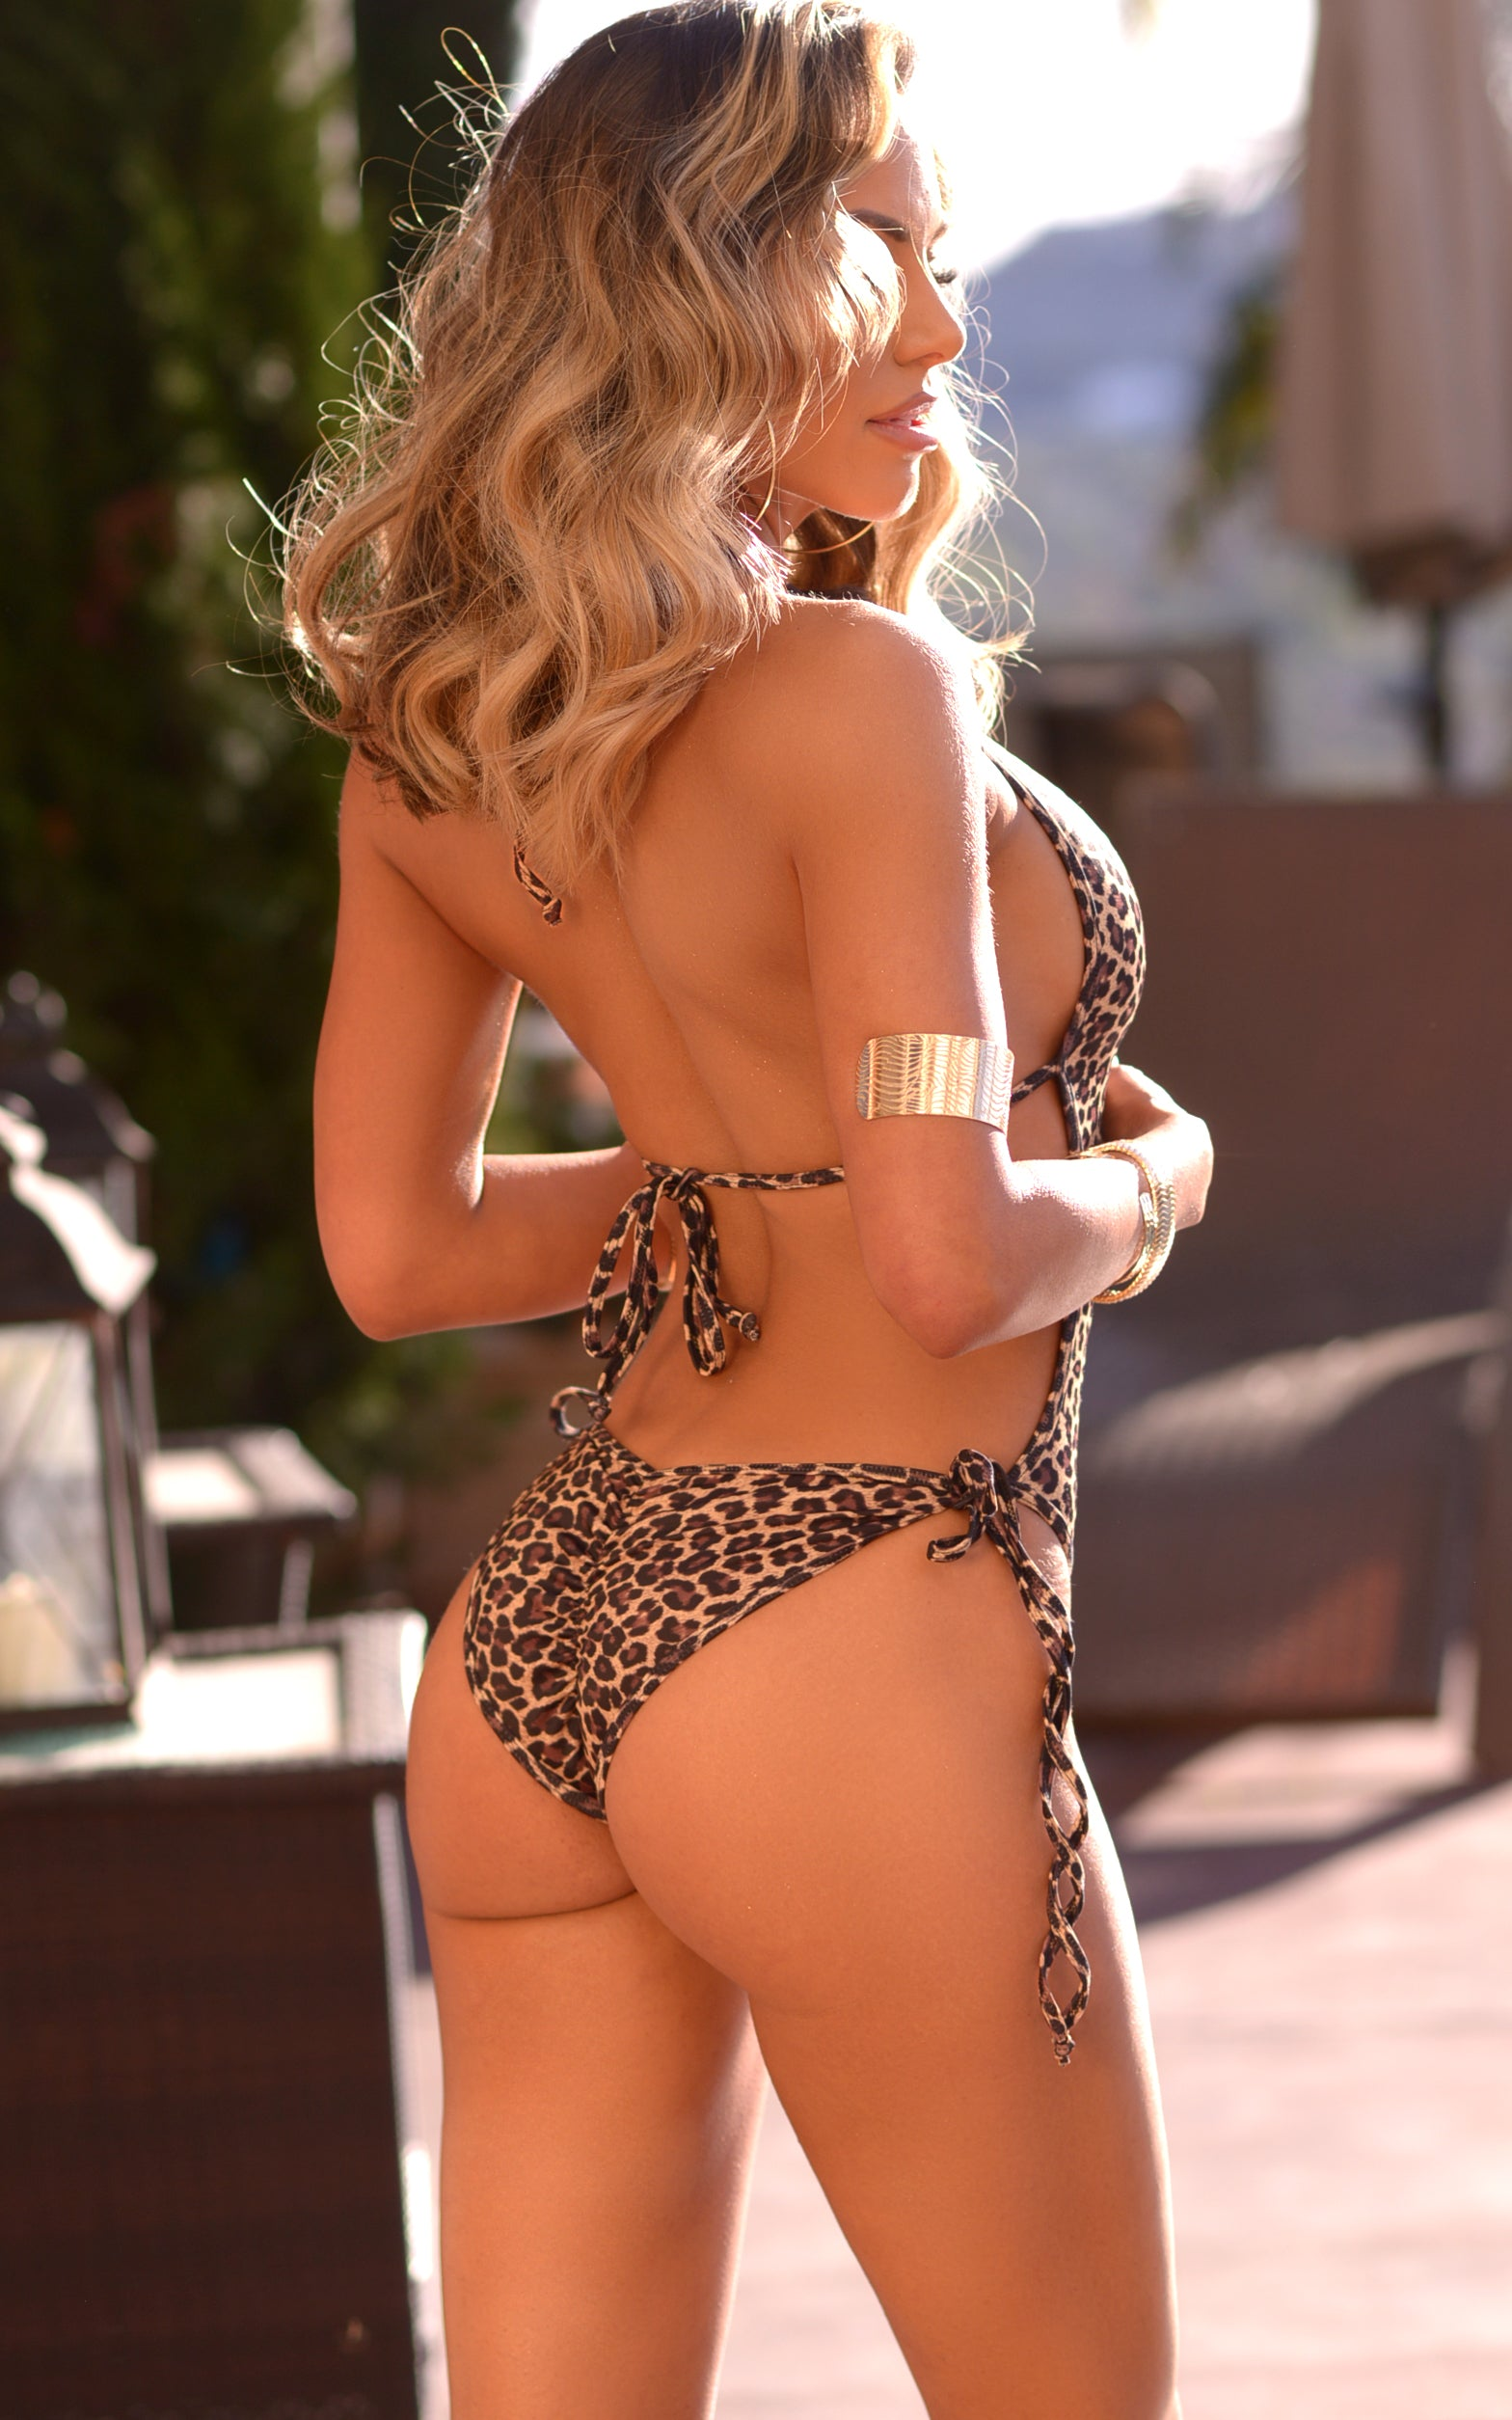 Westwood: Deep Plunge One Piece with Gold Loops in Leopard - Chynna Dolls Swimwear